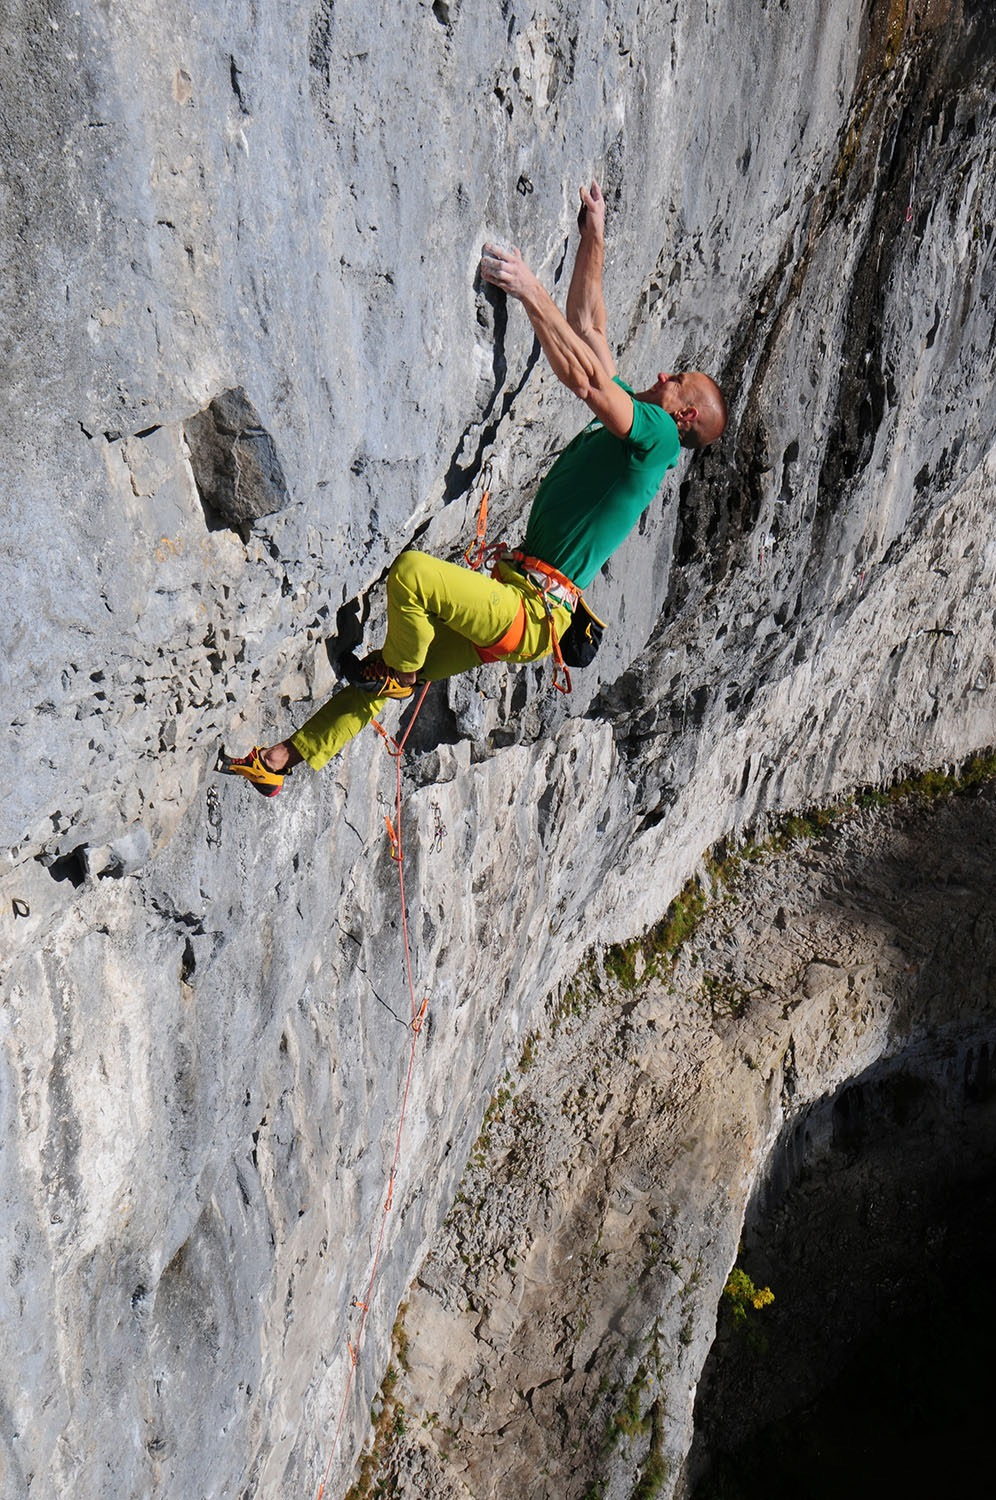 Sabotage 8c+, Malham, UK. First ascent in 2016.  Photo: Ian Parnell